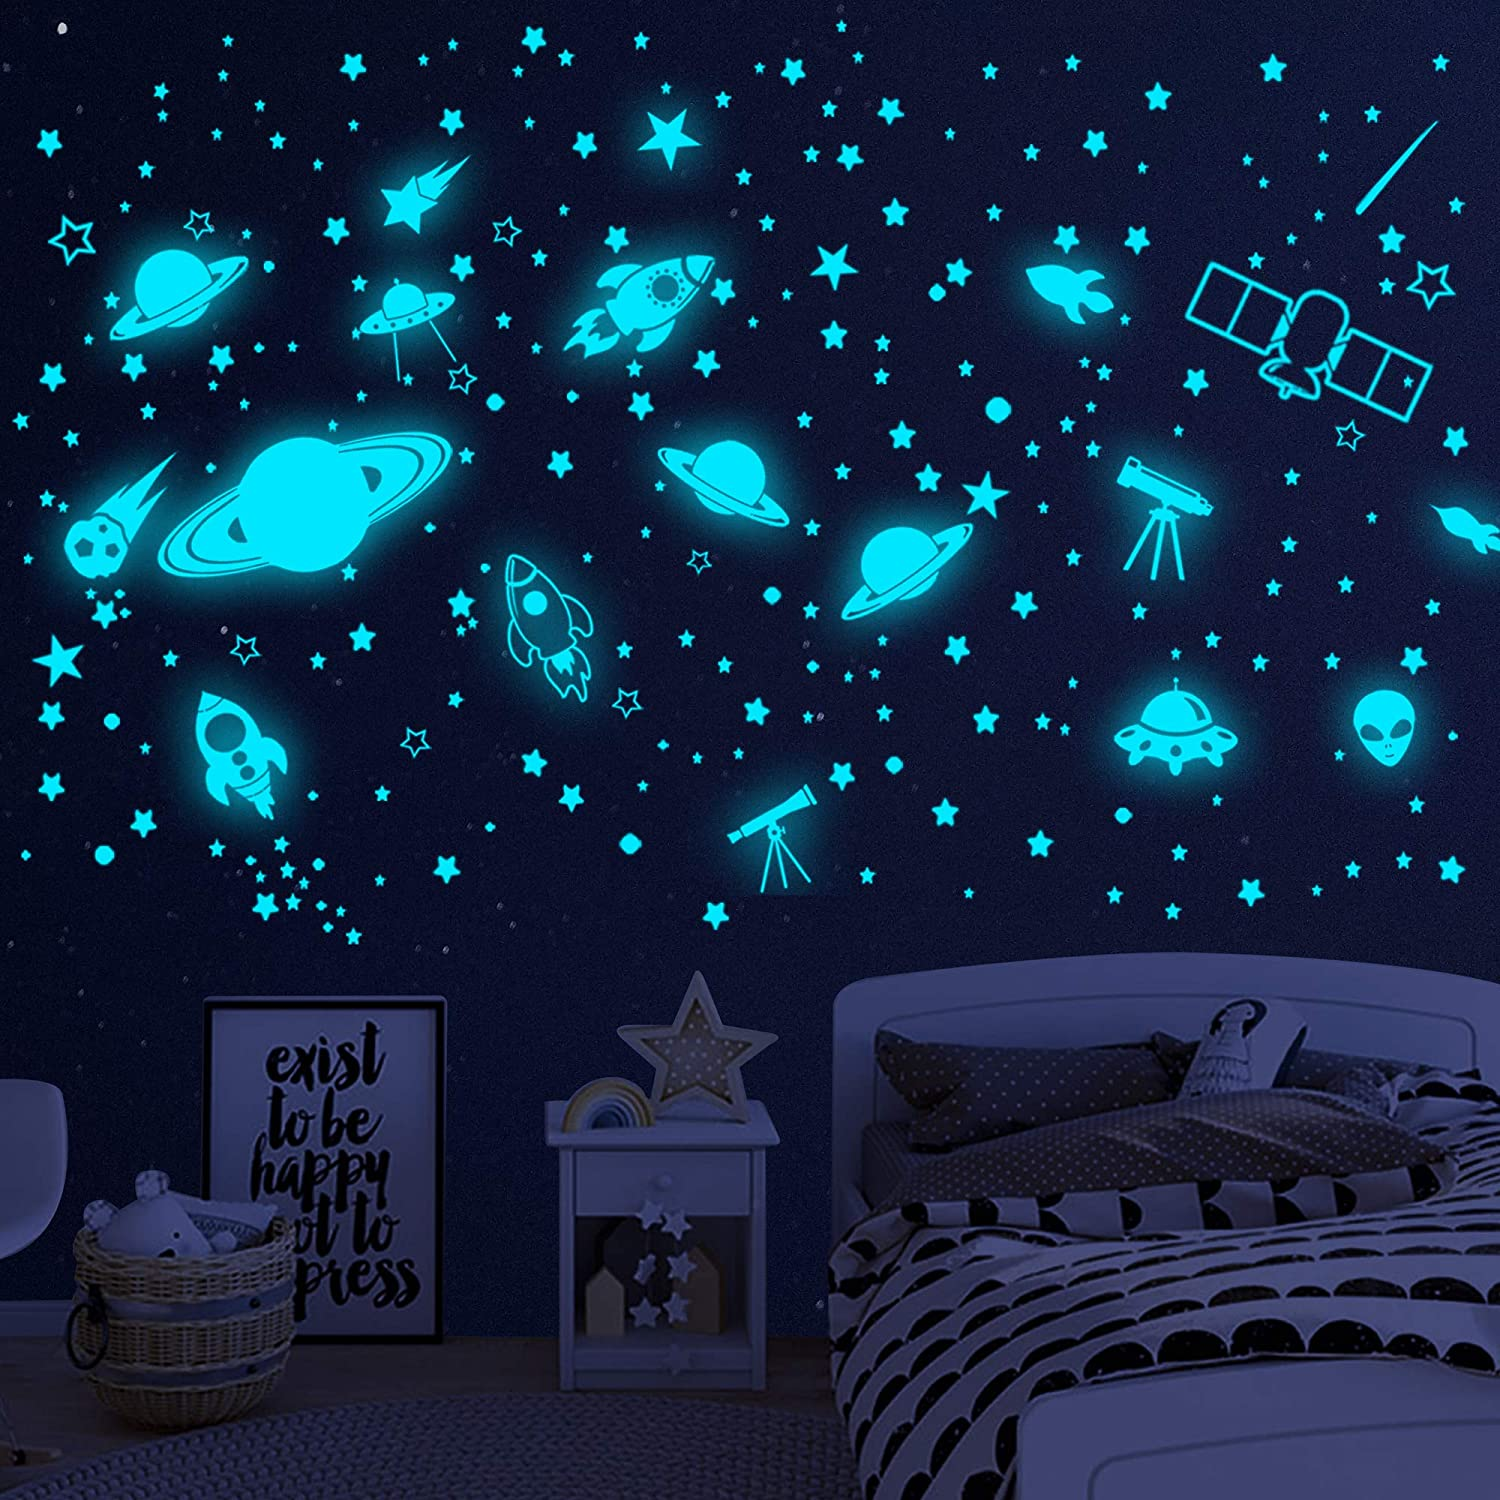 Glow in The Dark Stars for Ceiling,Glowing Space Planet Wall Stickers Solar System Wall Decal,Galaxy Rockets Wall Decor for Kids Boys Girls Bedroom Nursery Room Playroom Ceiling Decor